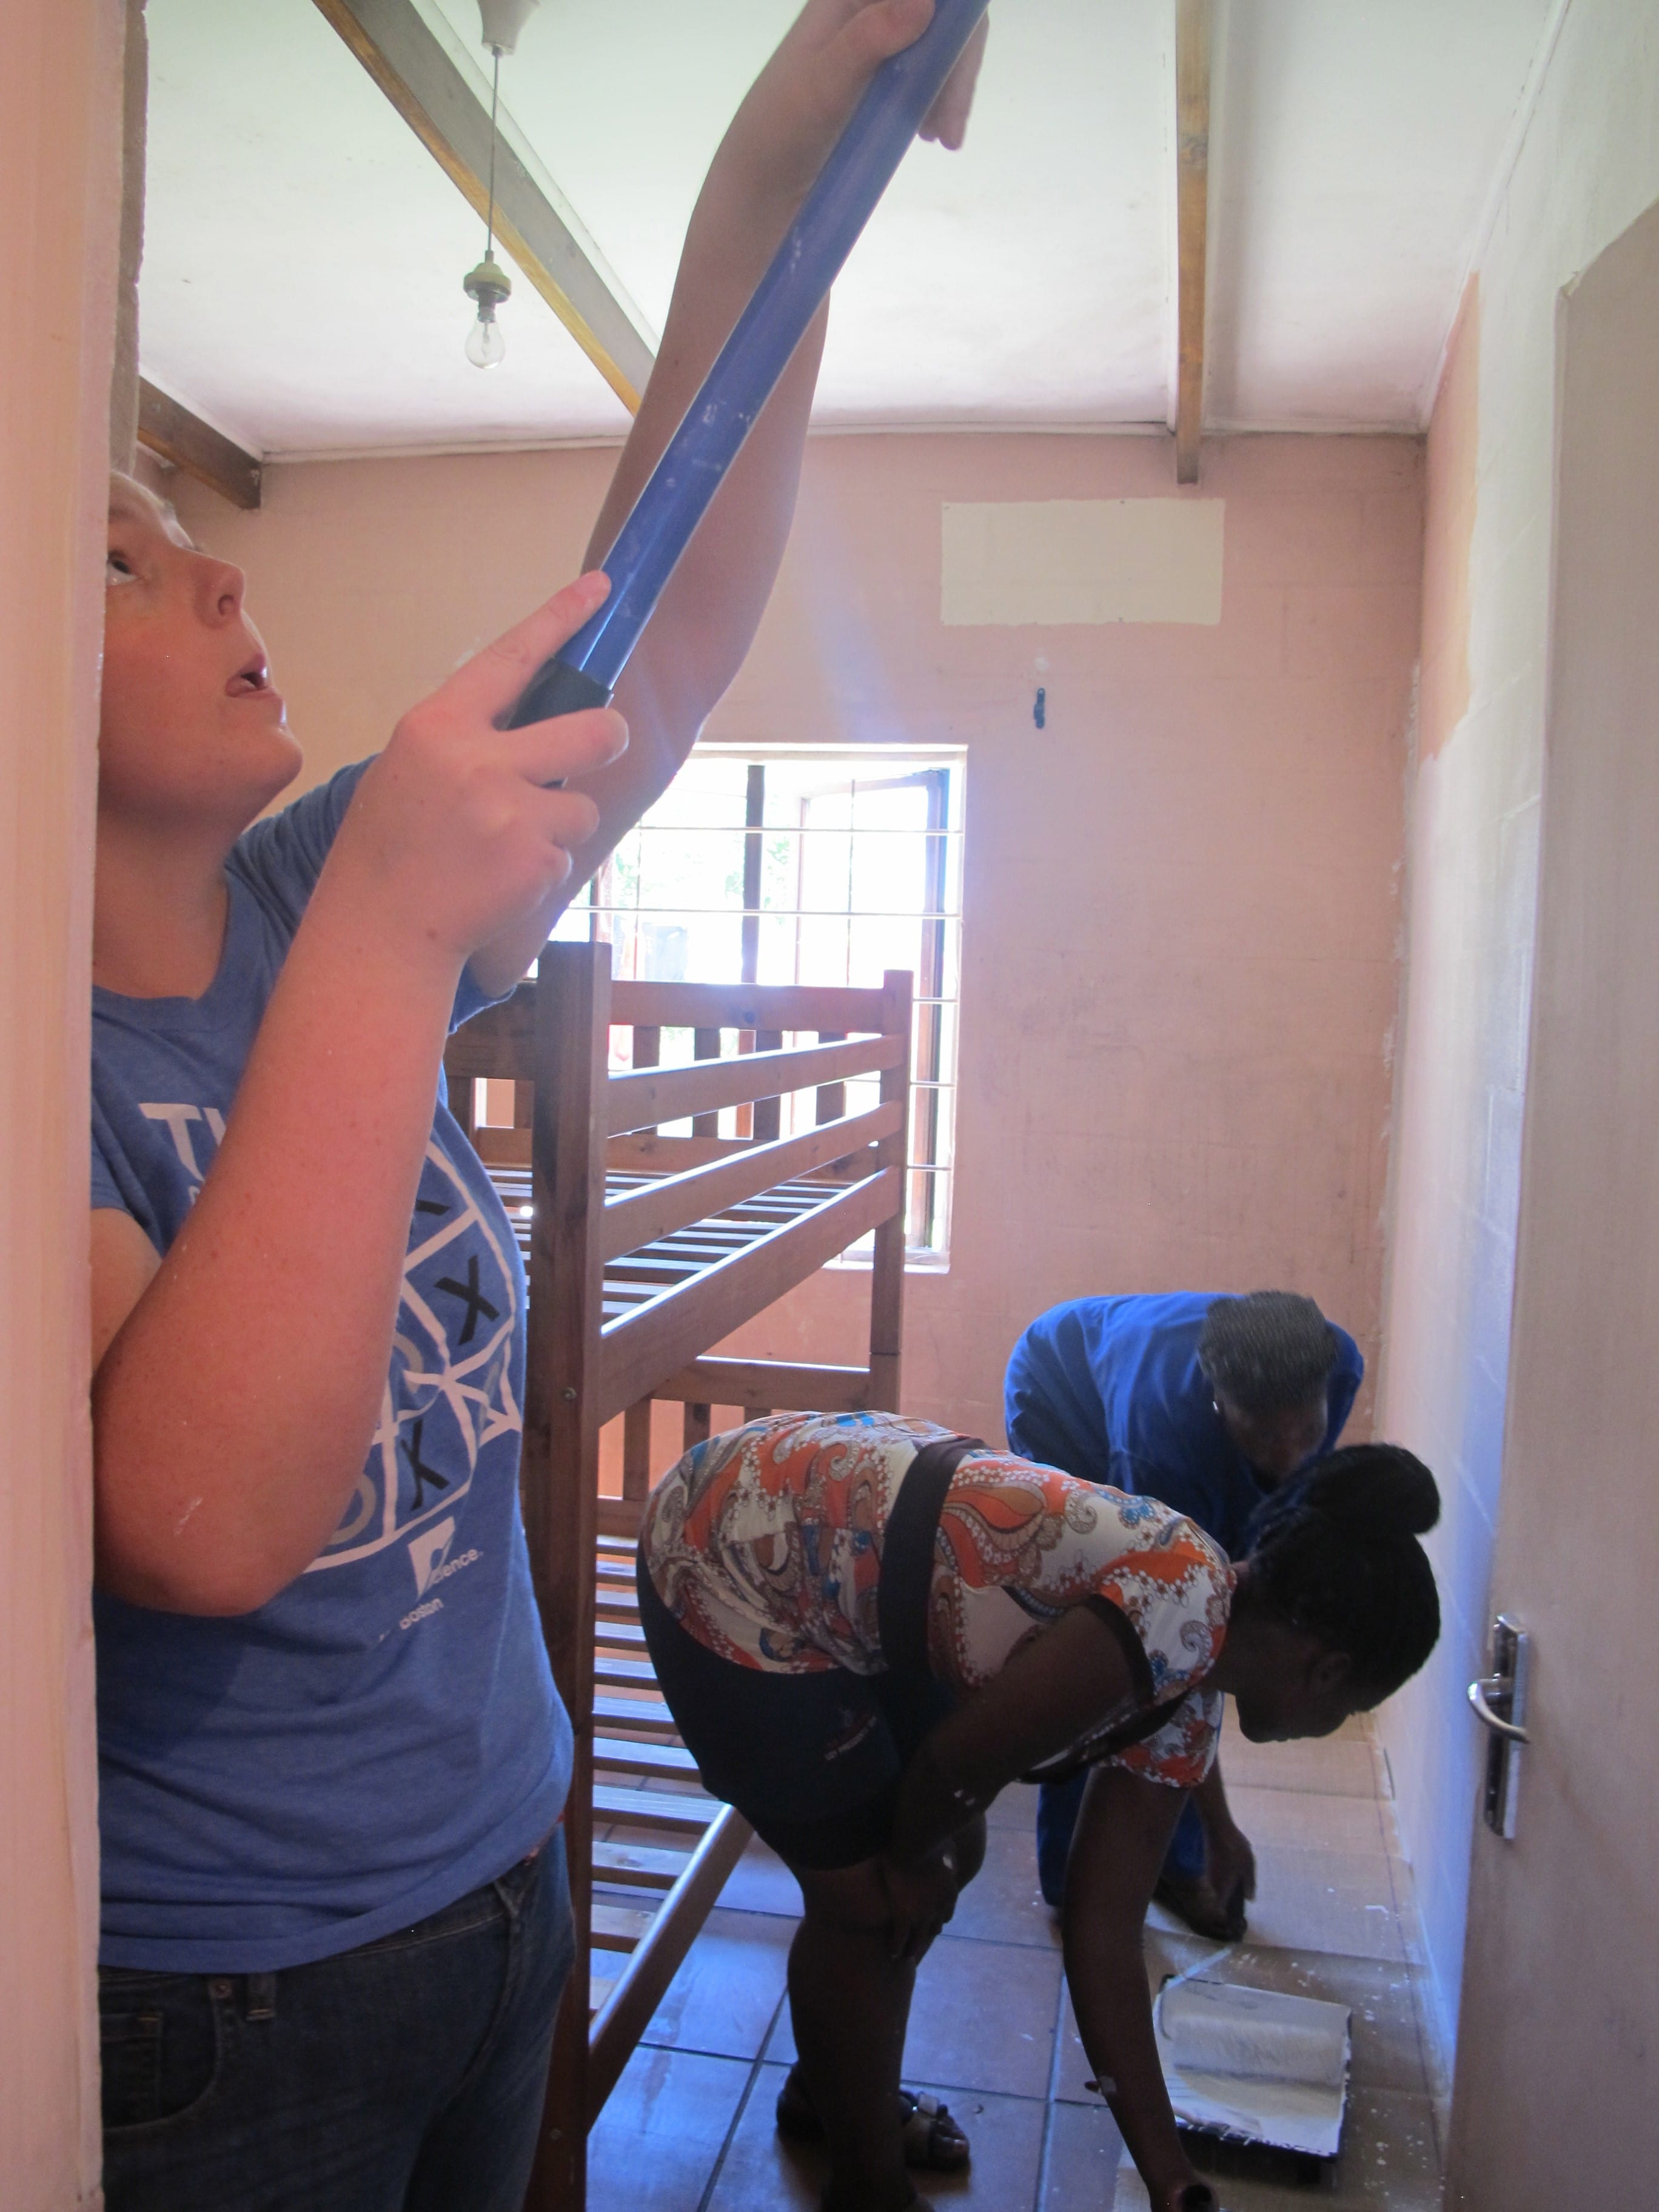 Julia works with two of the community women to paint one of the bedrooms